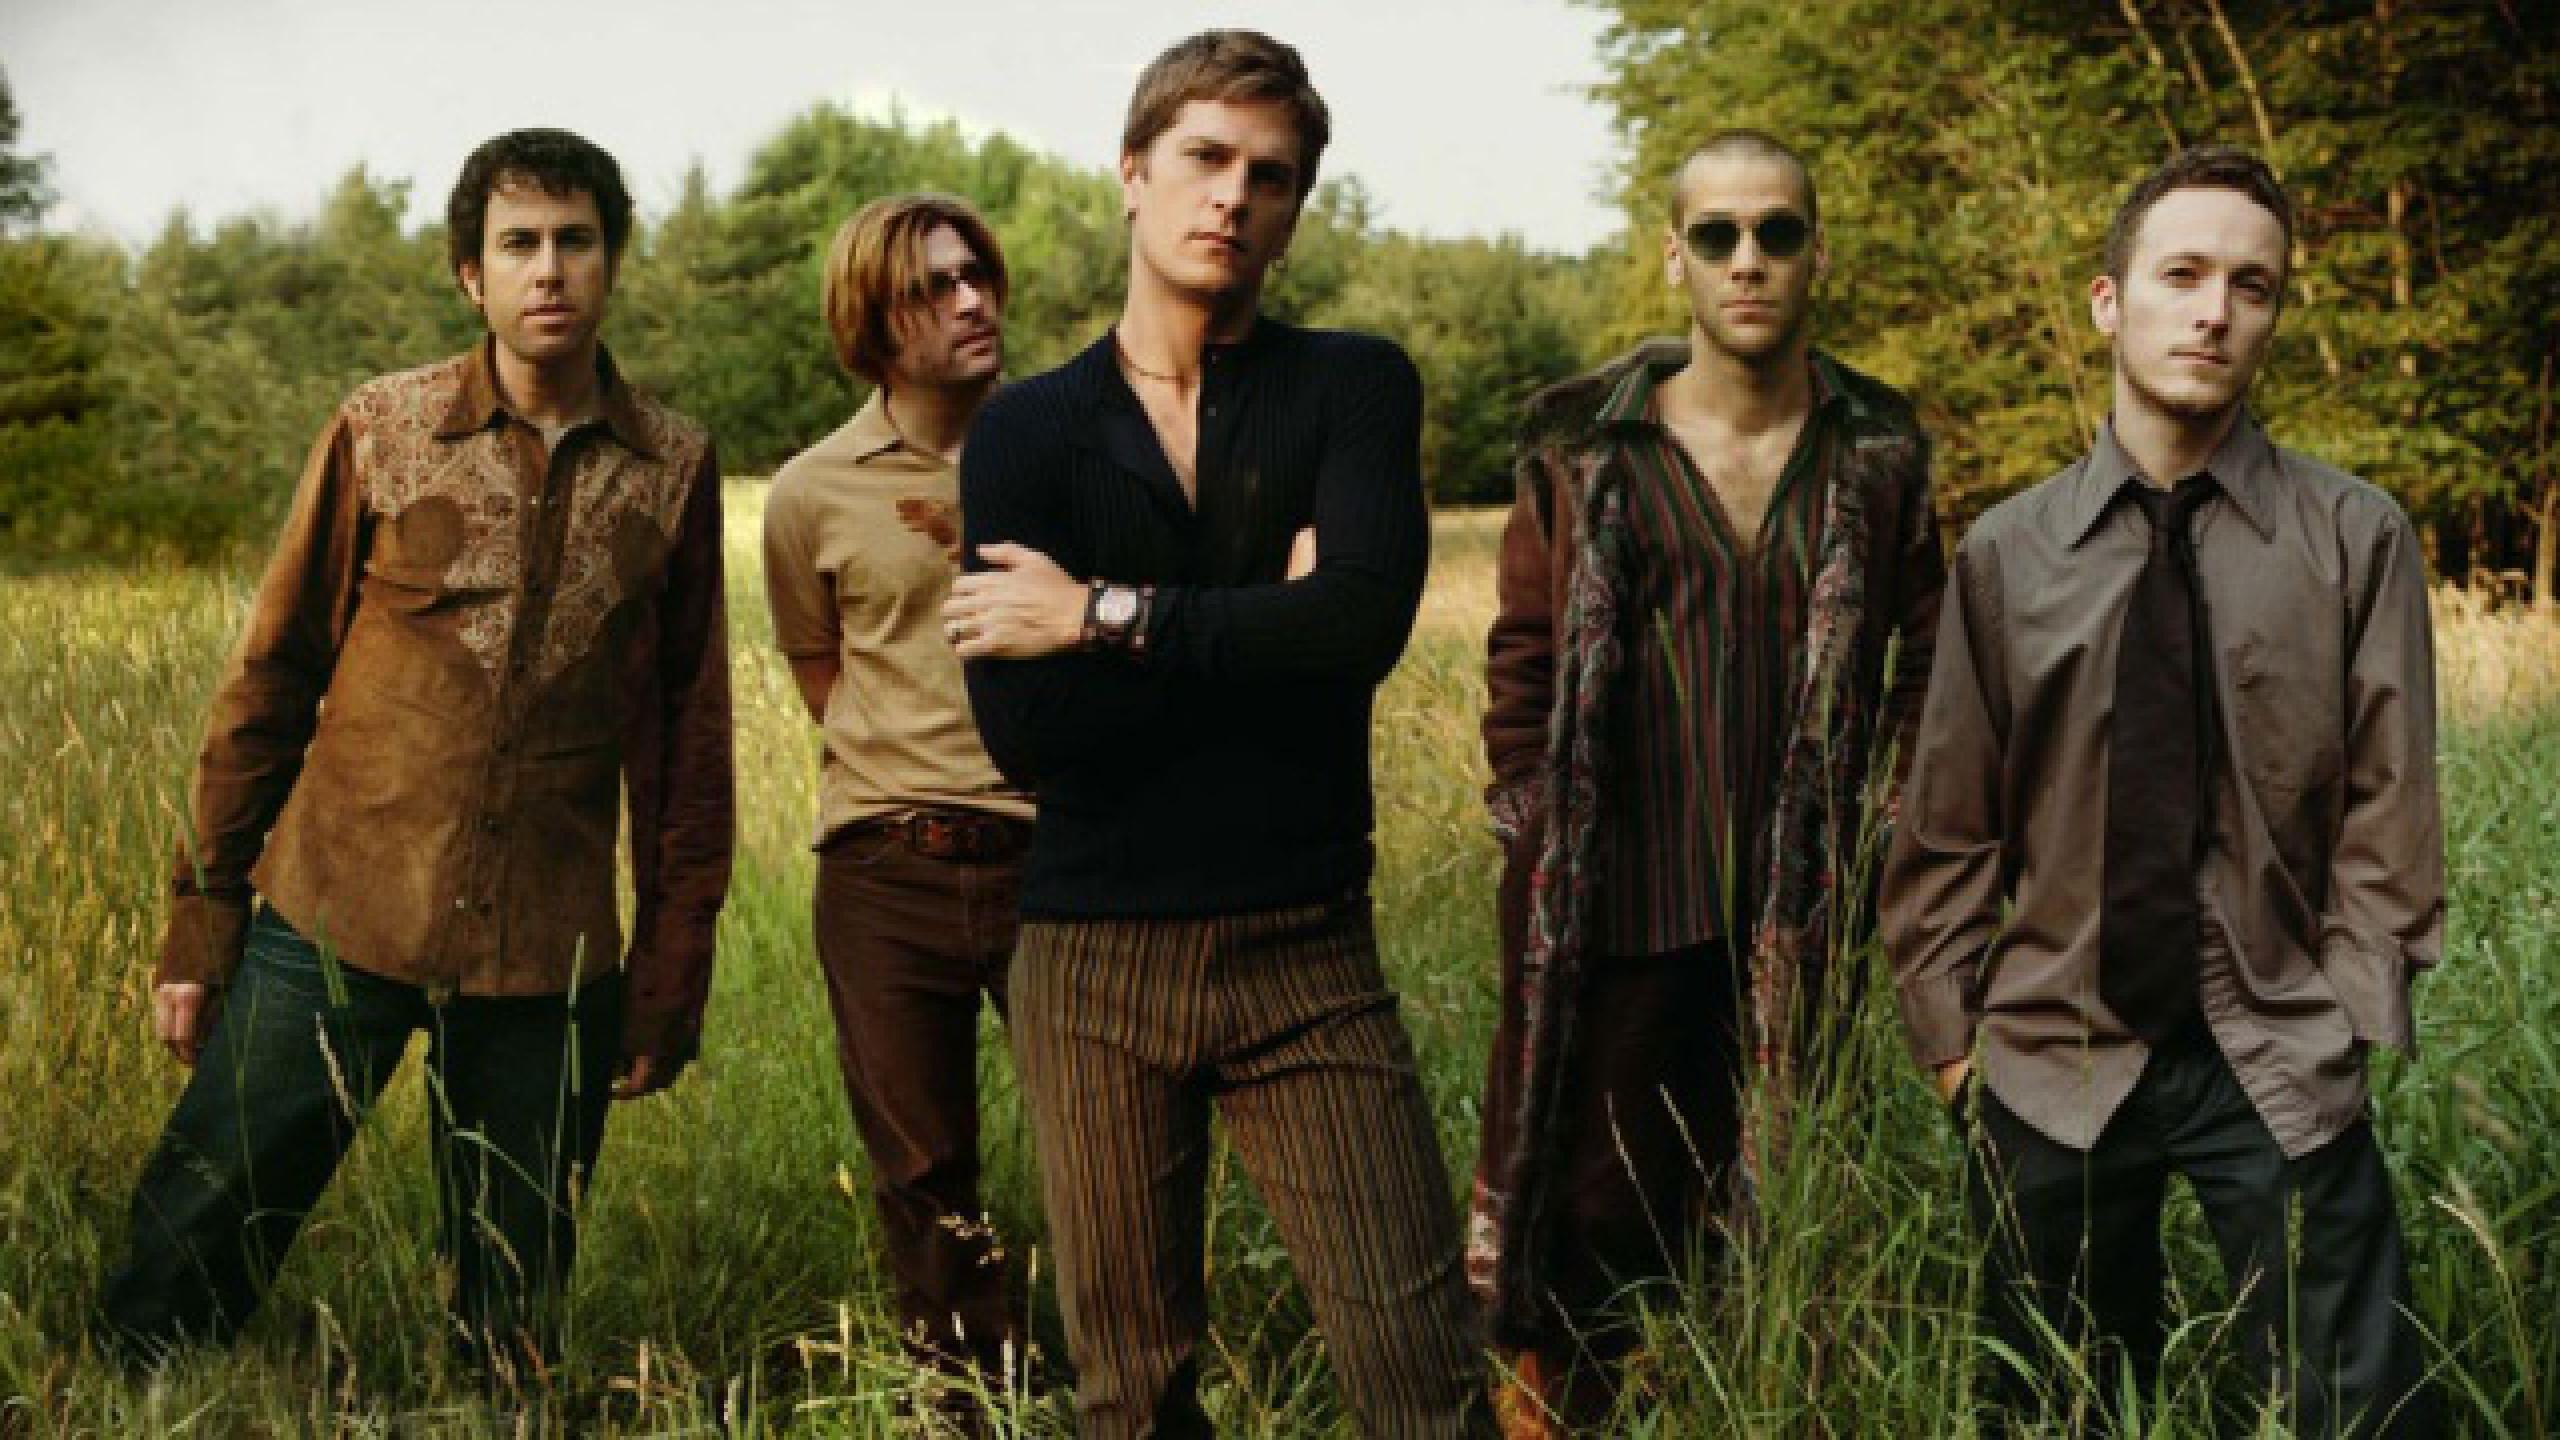 Matchbox 20 Tour 2020.Matchbox Twenty Tour Dates 2019 2020 Matchbox Twenty